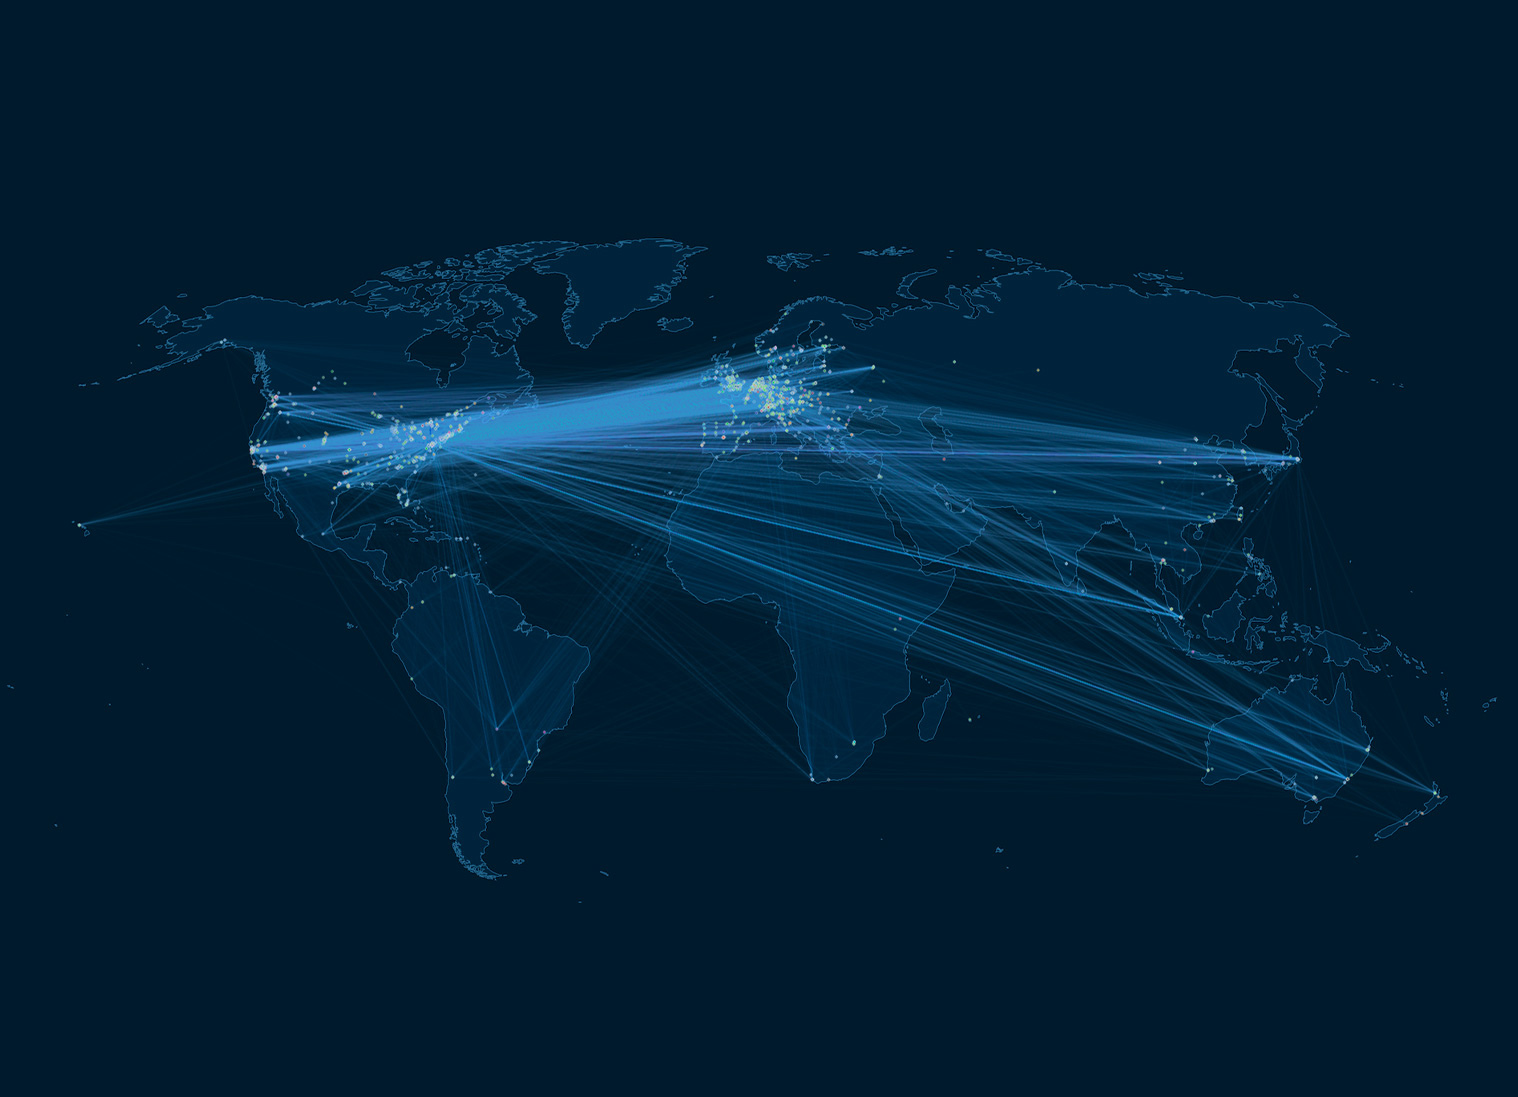 Global Lightning Network